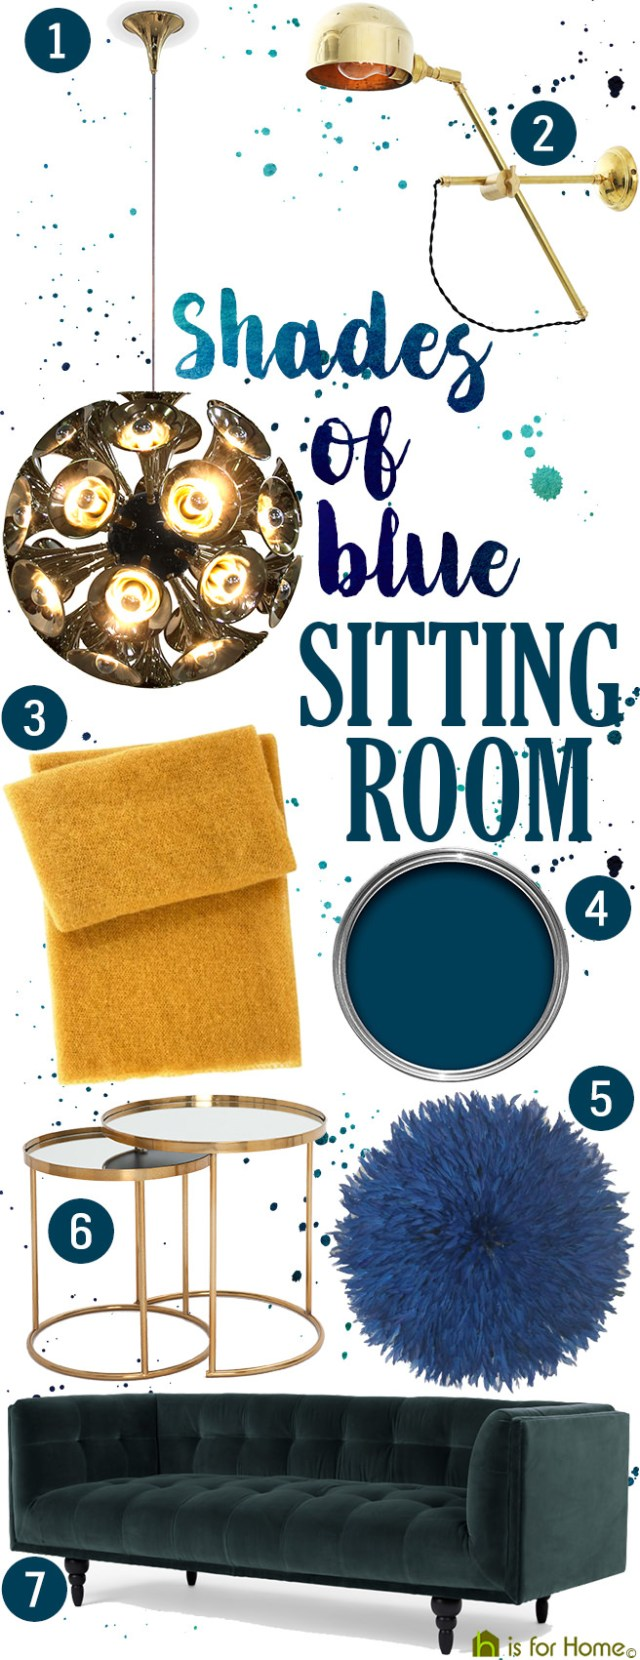 Get their look: Shades of blue sitting room | H is for Home